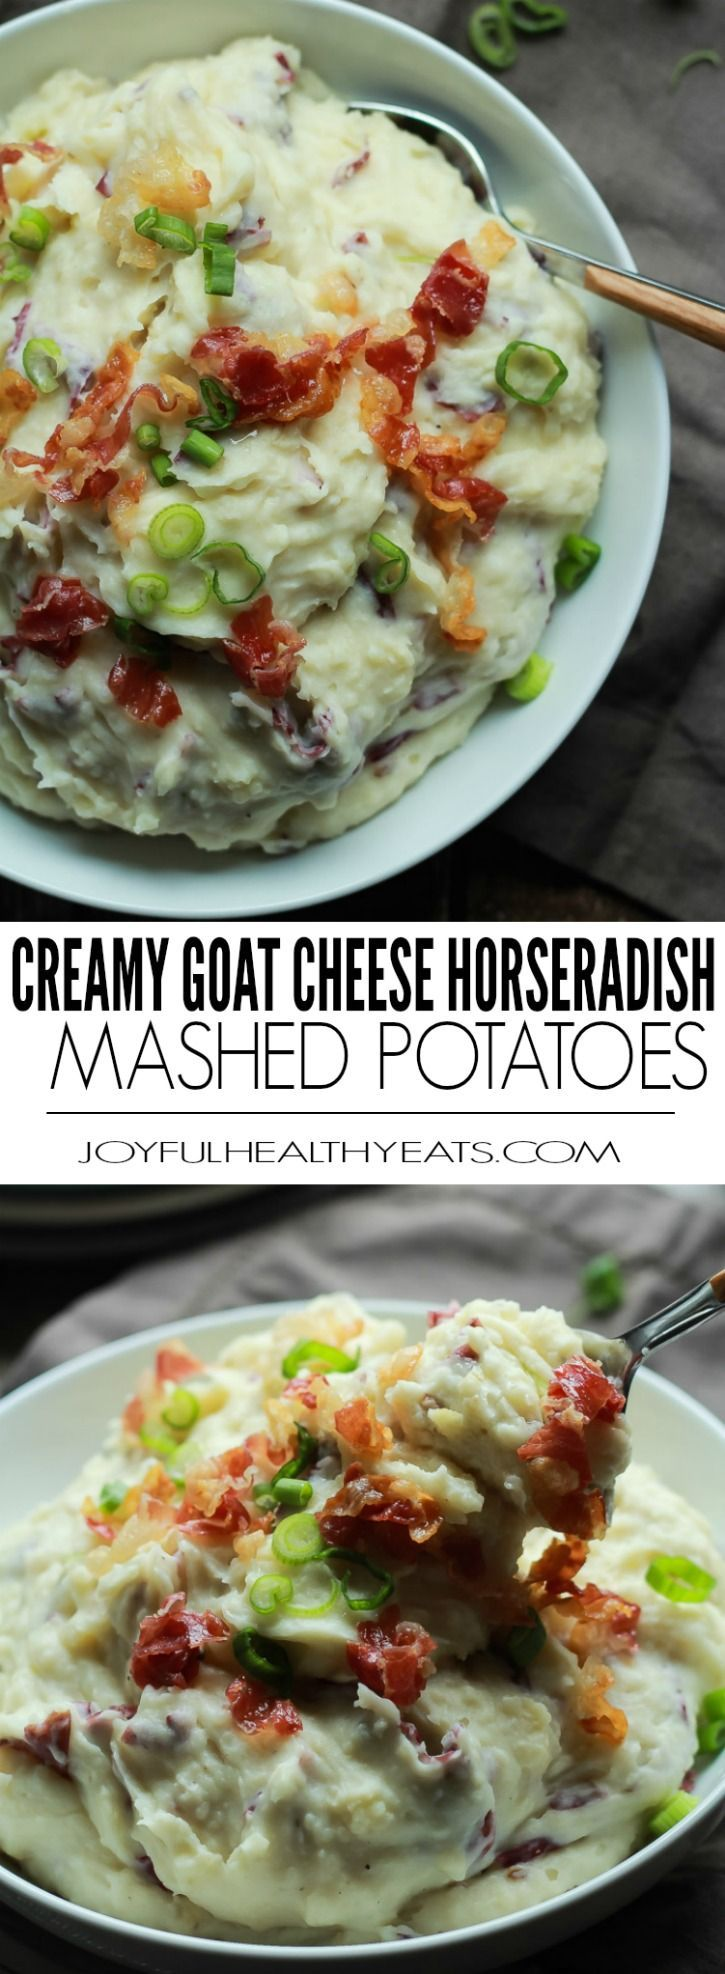 ... boring potatoes! Creamy Goat Cheese Horseradish Mashed Potatoes